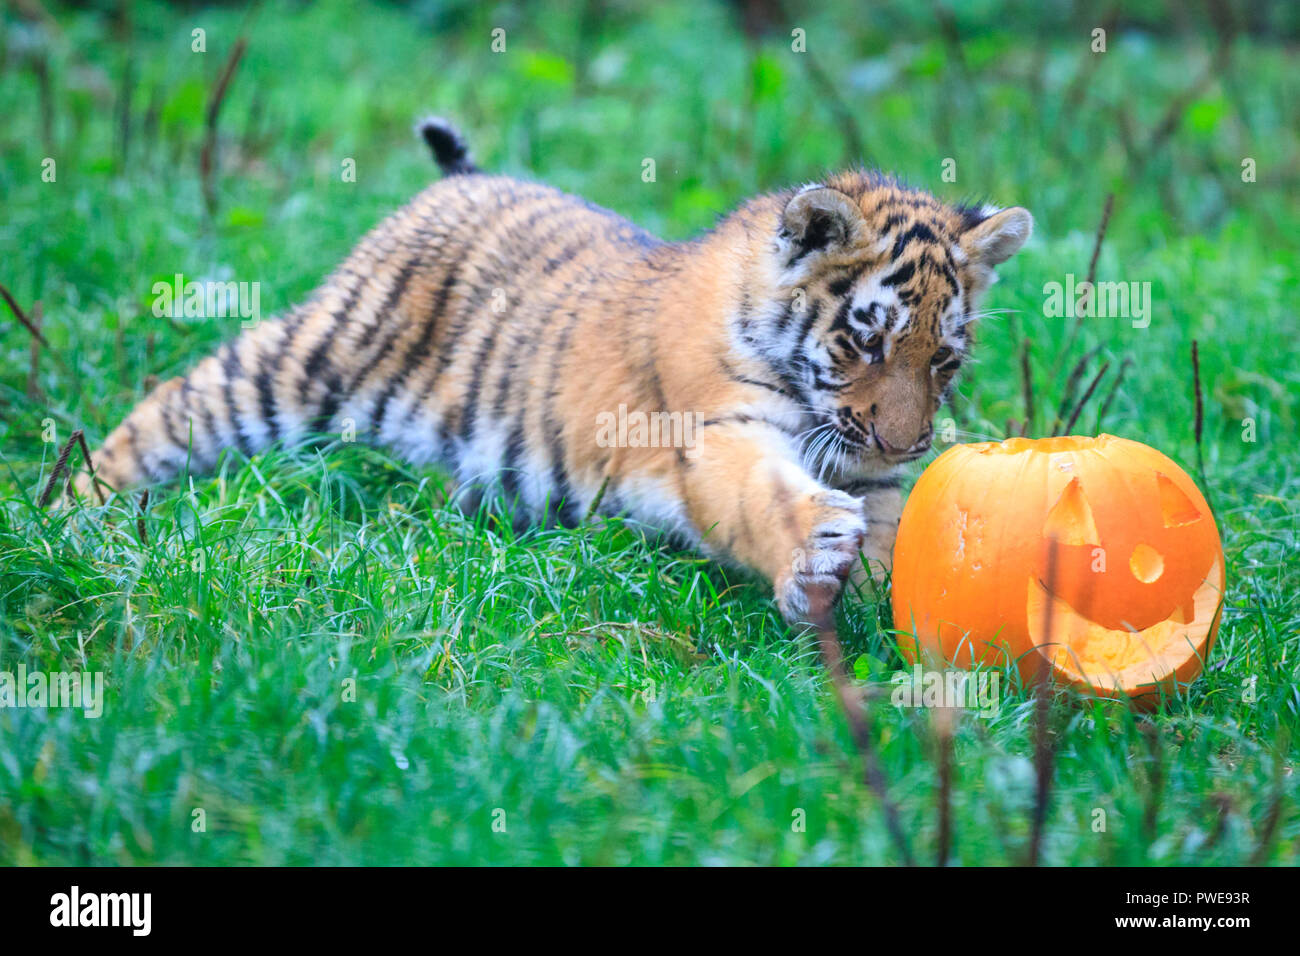 ZSL Whipsnade, UK - 16th Oct 2018. Cheey cub Makari is the first to investigate. Three inquisitive four-month-old Amur tiger cubs, named Dmitri, Makari and Czar, along with their mum Naya and dad Botzman, use their senses to investigate and play with their Halloween pumpkin enrichments.   The surprises are given out ahead of Boo at the Zoo, ZSL Whipsnade Zoo's annual celebration of hairy-scary Halloween family fun which runs from Saturday 20 October to Wednesday 31 October 2018. Credit: Imageplotter News and Sports/Alamy Live News - Stock Image